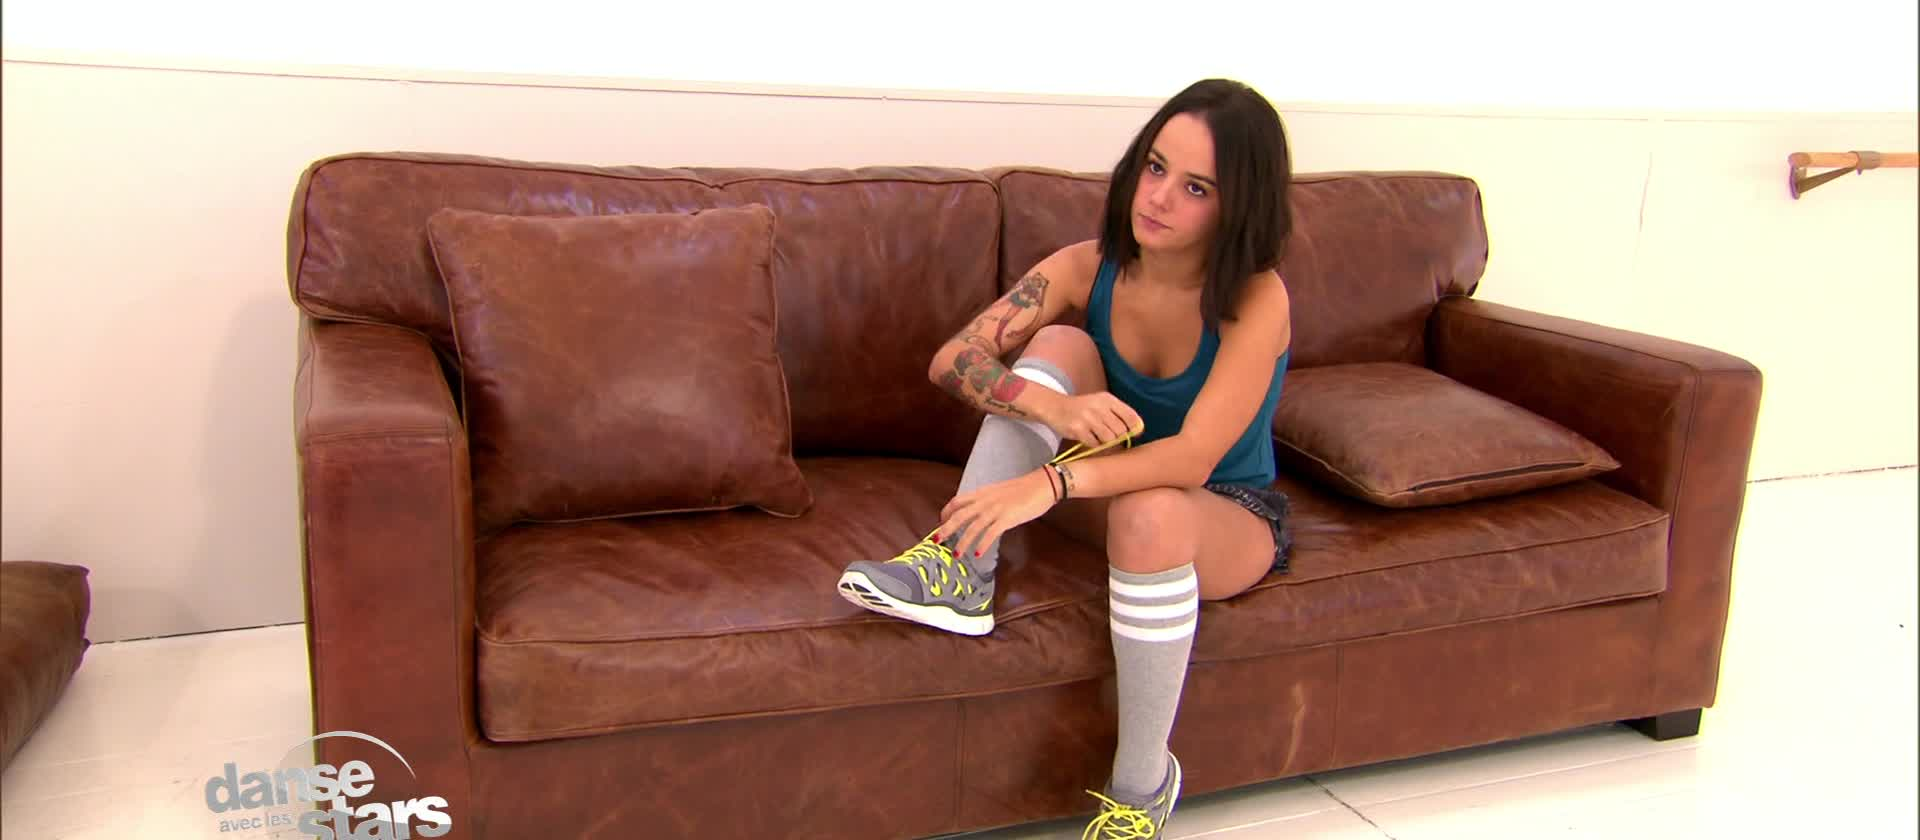 Alizee high heels porno galleries